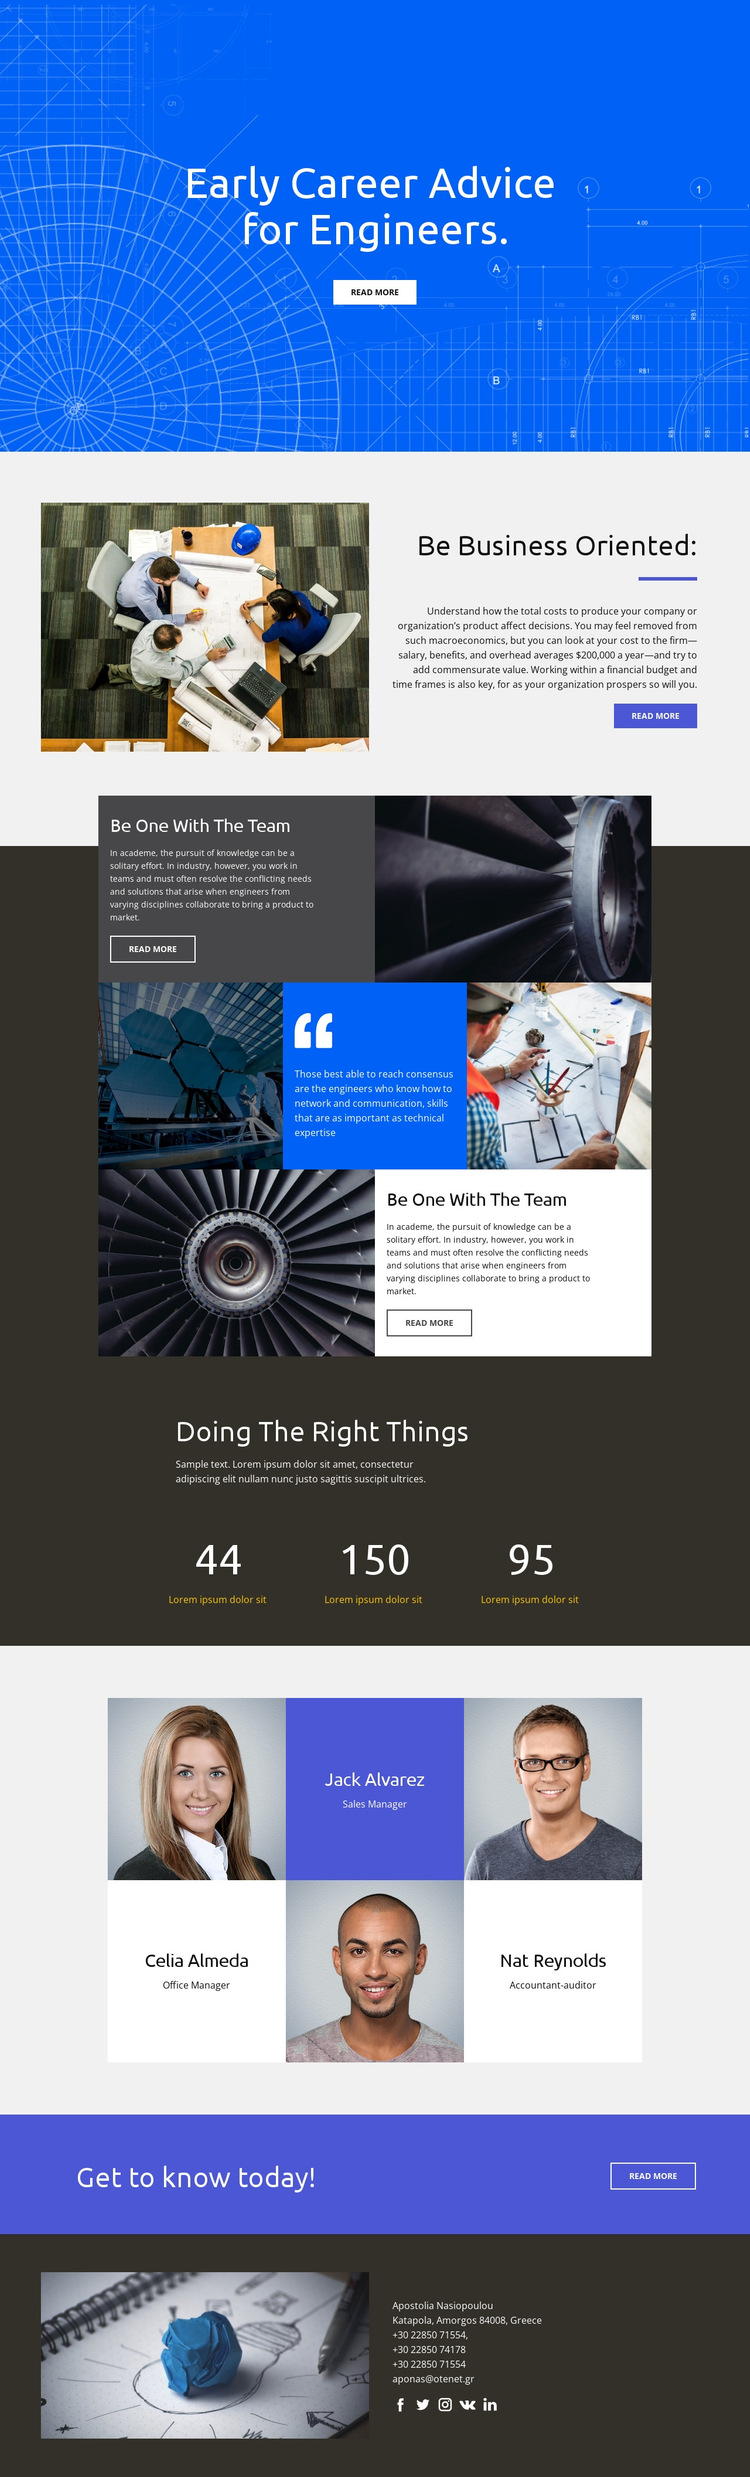 Advice for Engineers HTML5 Template